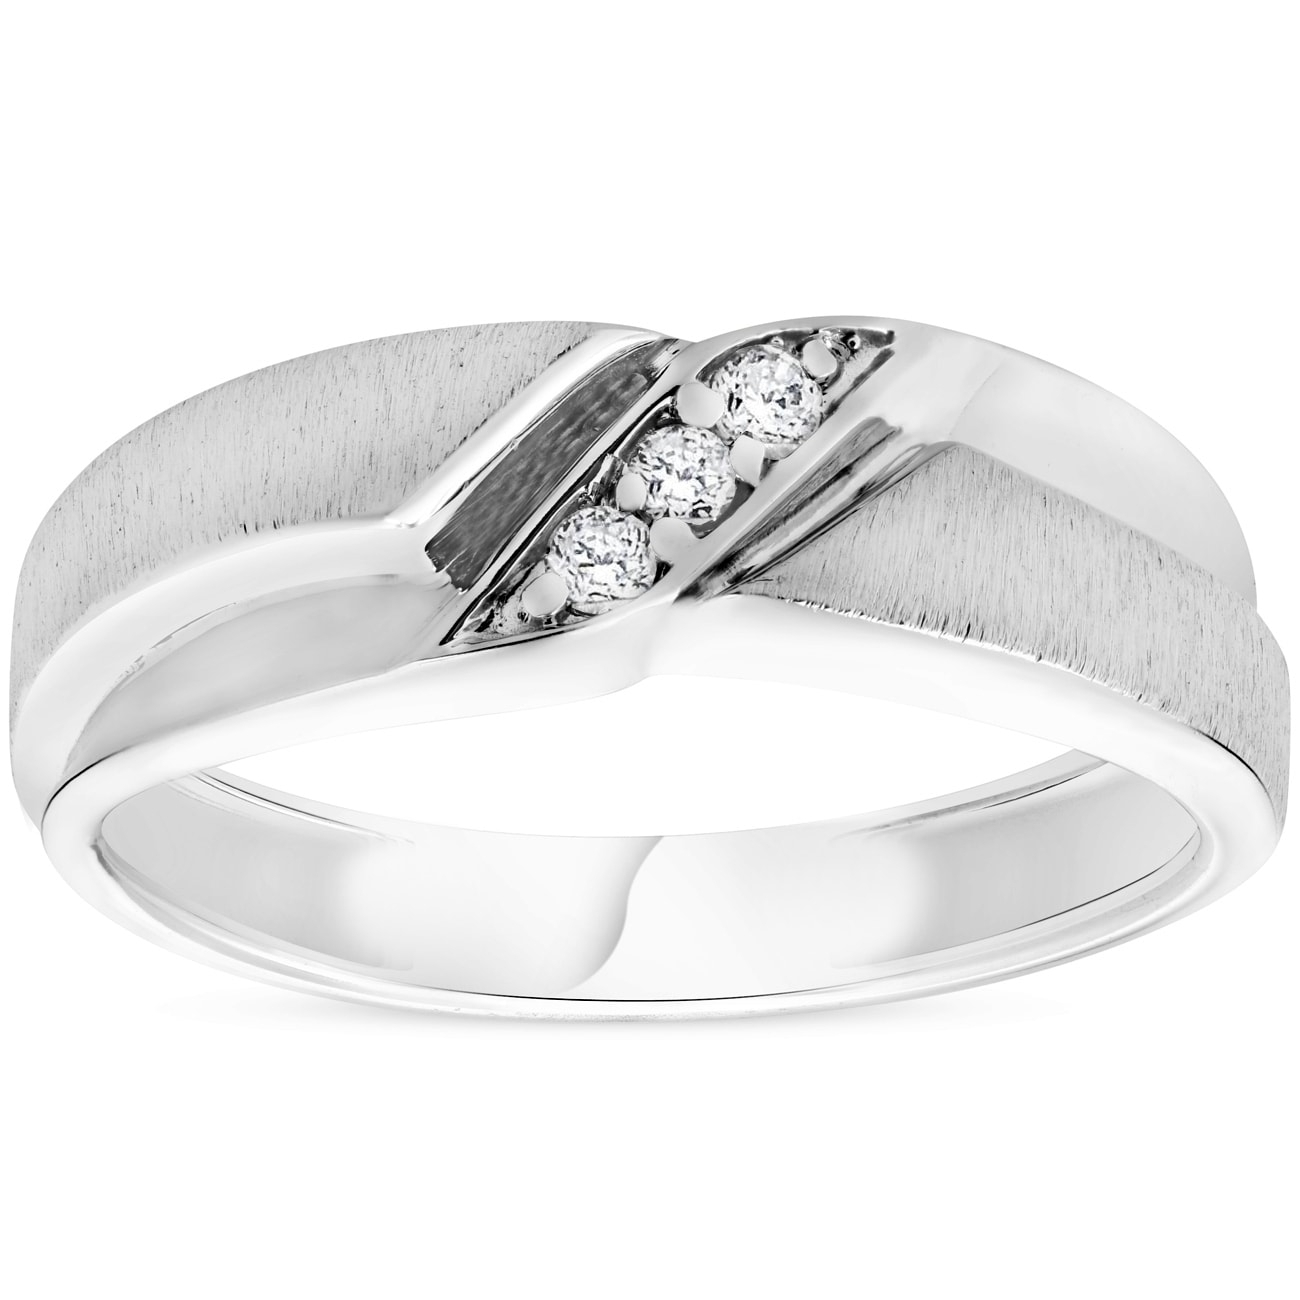 Shop Bliss 10K White Gold 1/10 Ct Tdw Diamond Three Stone Mens Ring Regarding Recent Diamond Three Stone Slant Wedding Bands In 10K White Gold (Gallery 1 of 15)